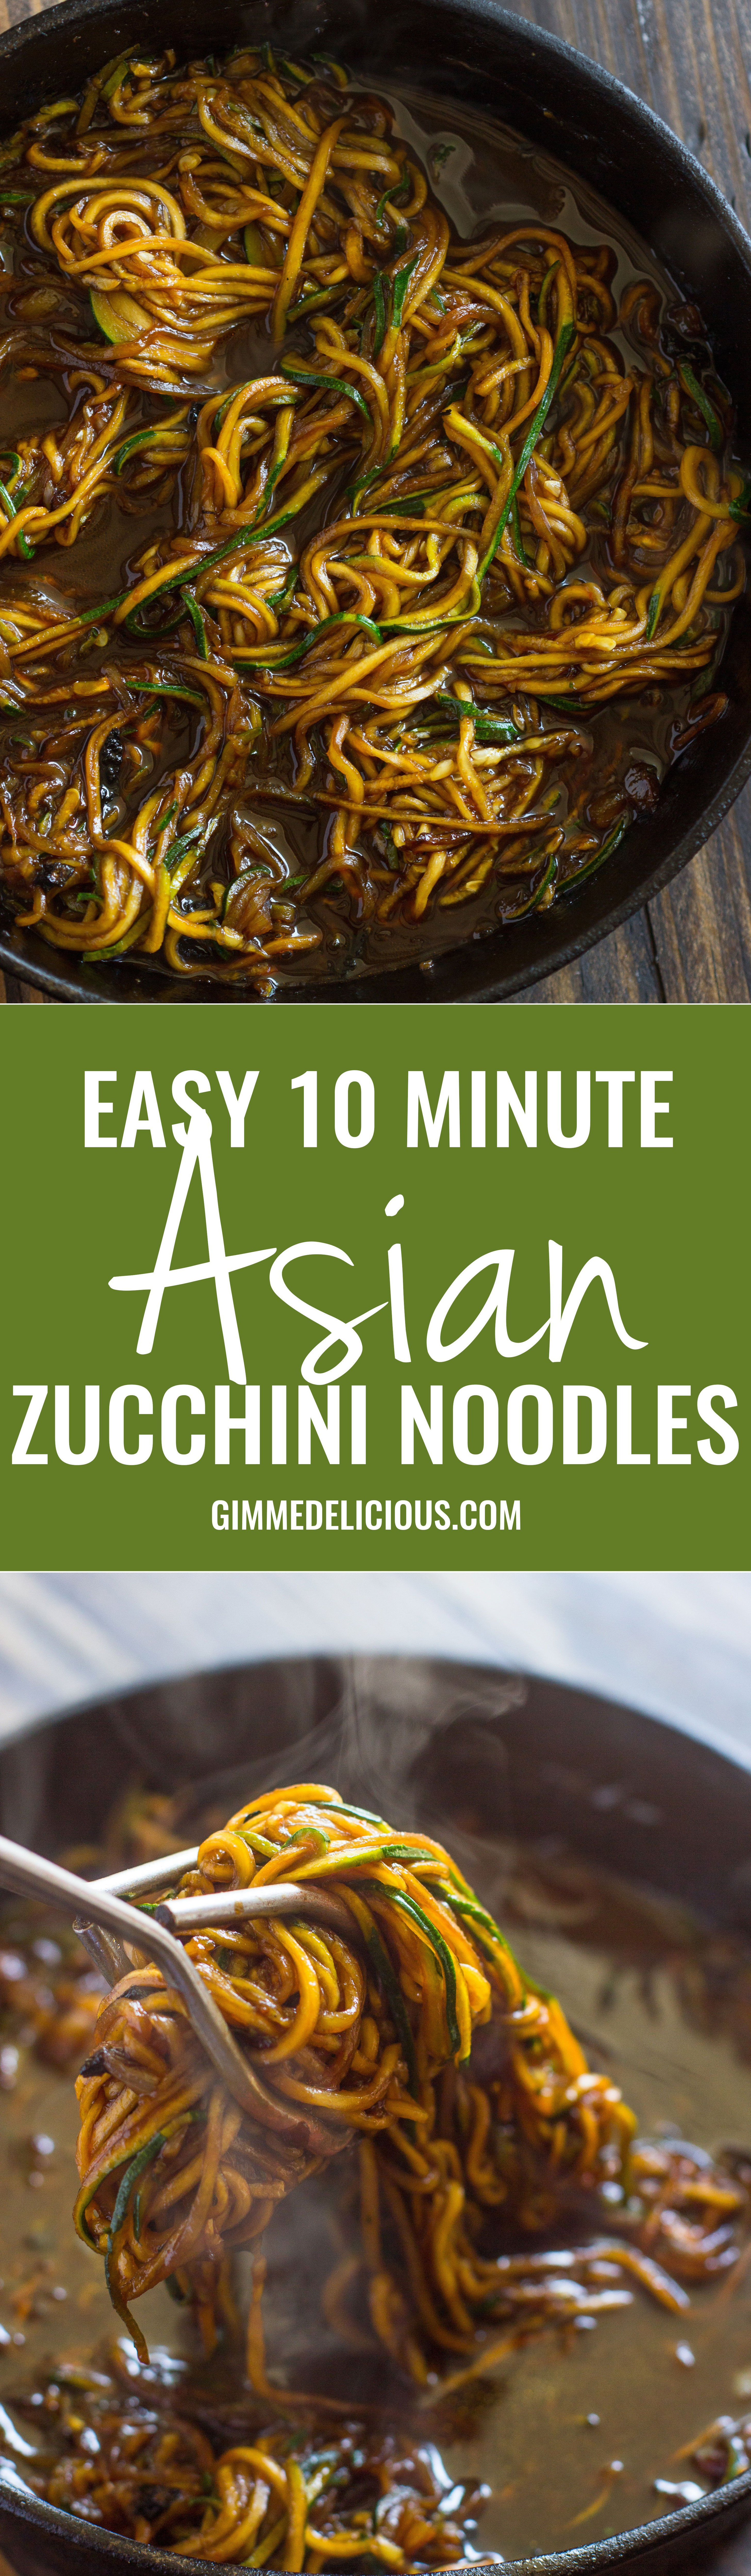 Easy 10 Minute Asian Zucchini Noodles Low Carb Paleo